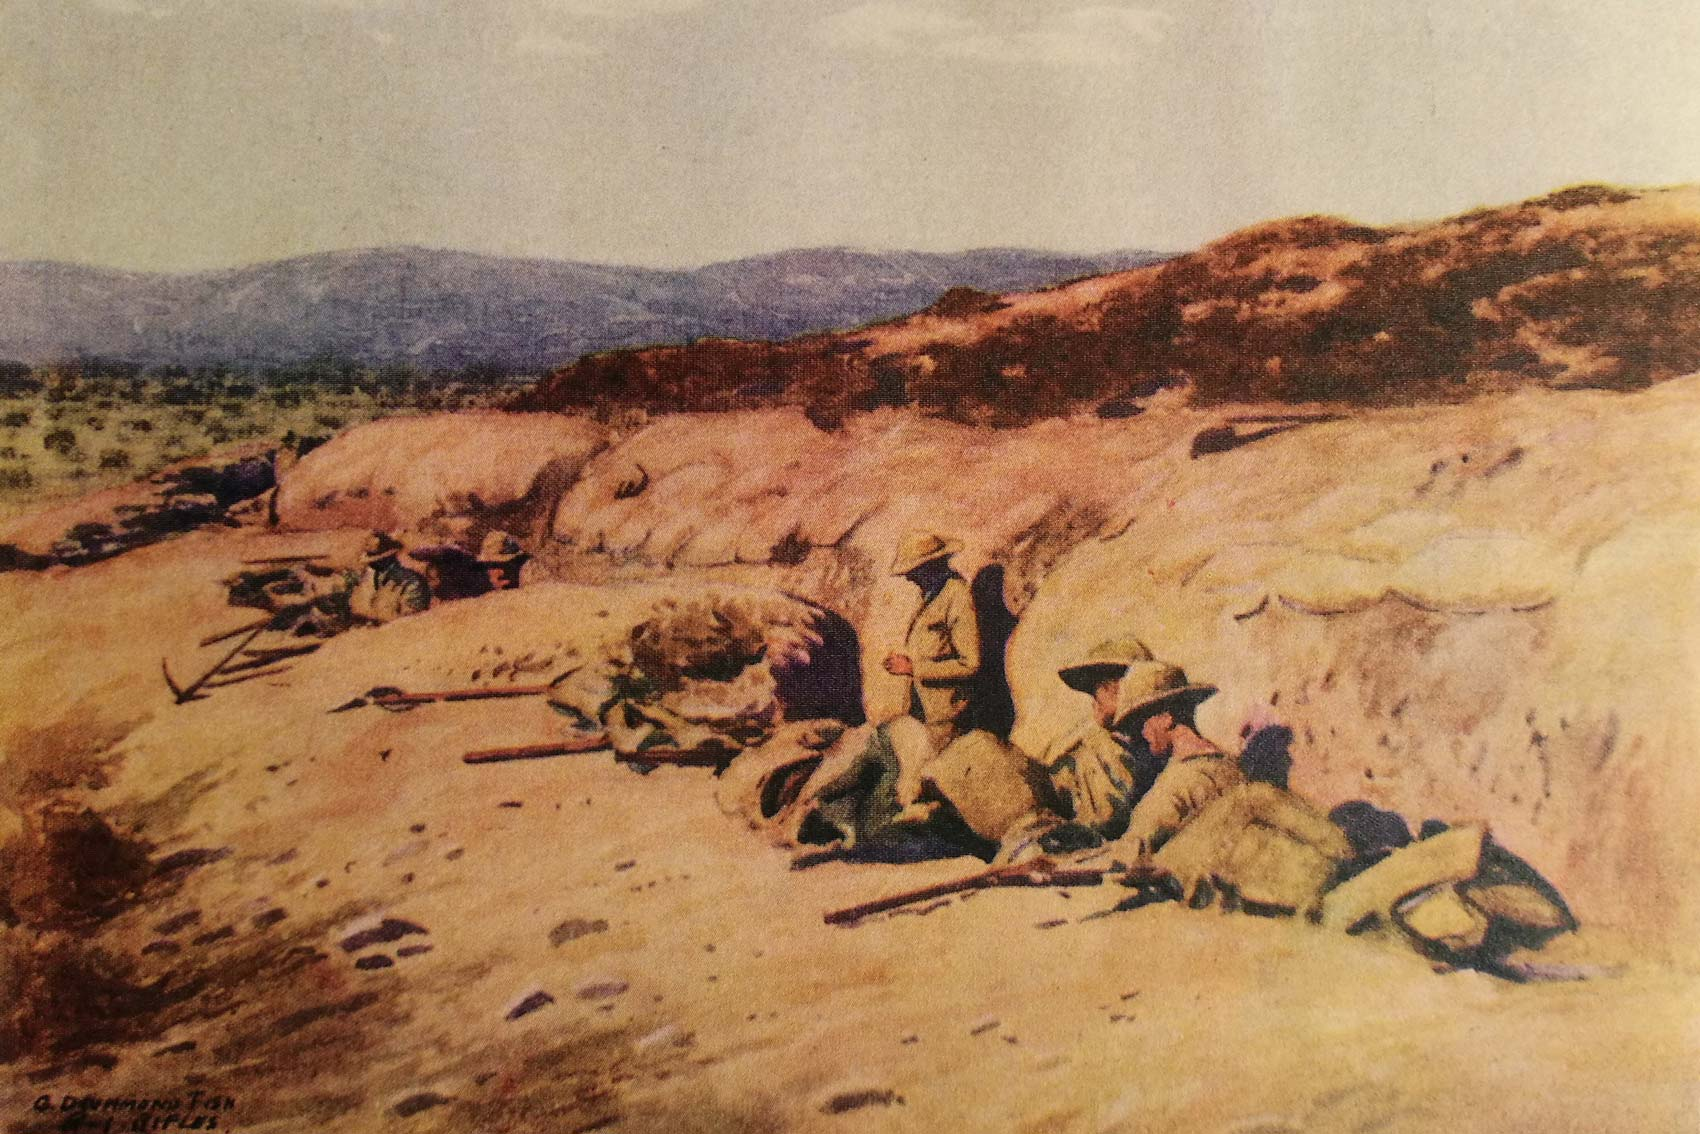 One of the illustrations from 'The Pals at Suvla Bay'. A painting by Lt Drummond Fish of members of 'D' Company, the Pals battalion of the Royal Dublin Fusiliers, in trenches at Chocolate Hill